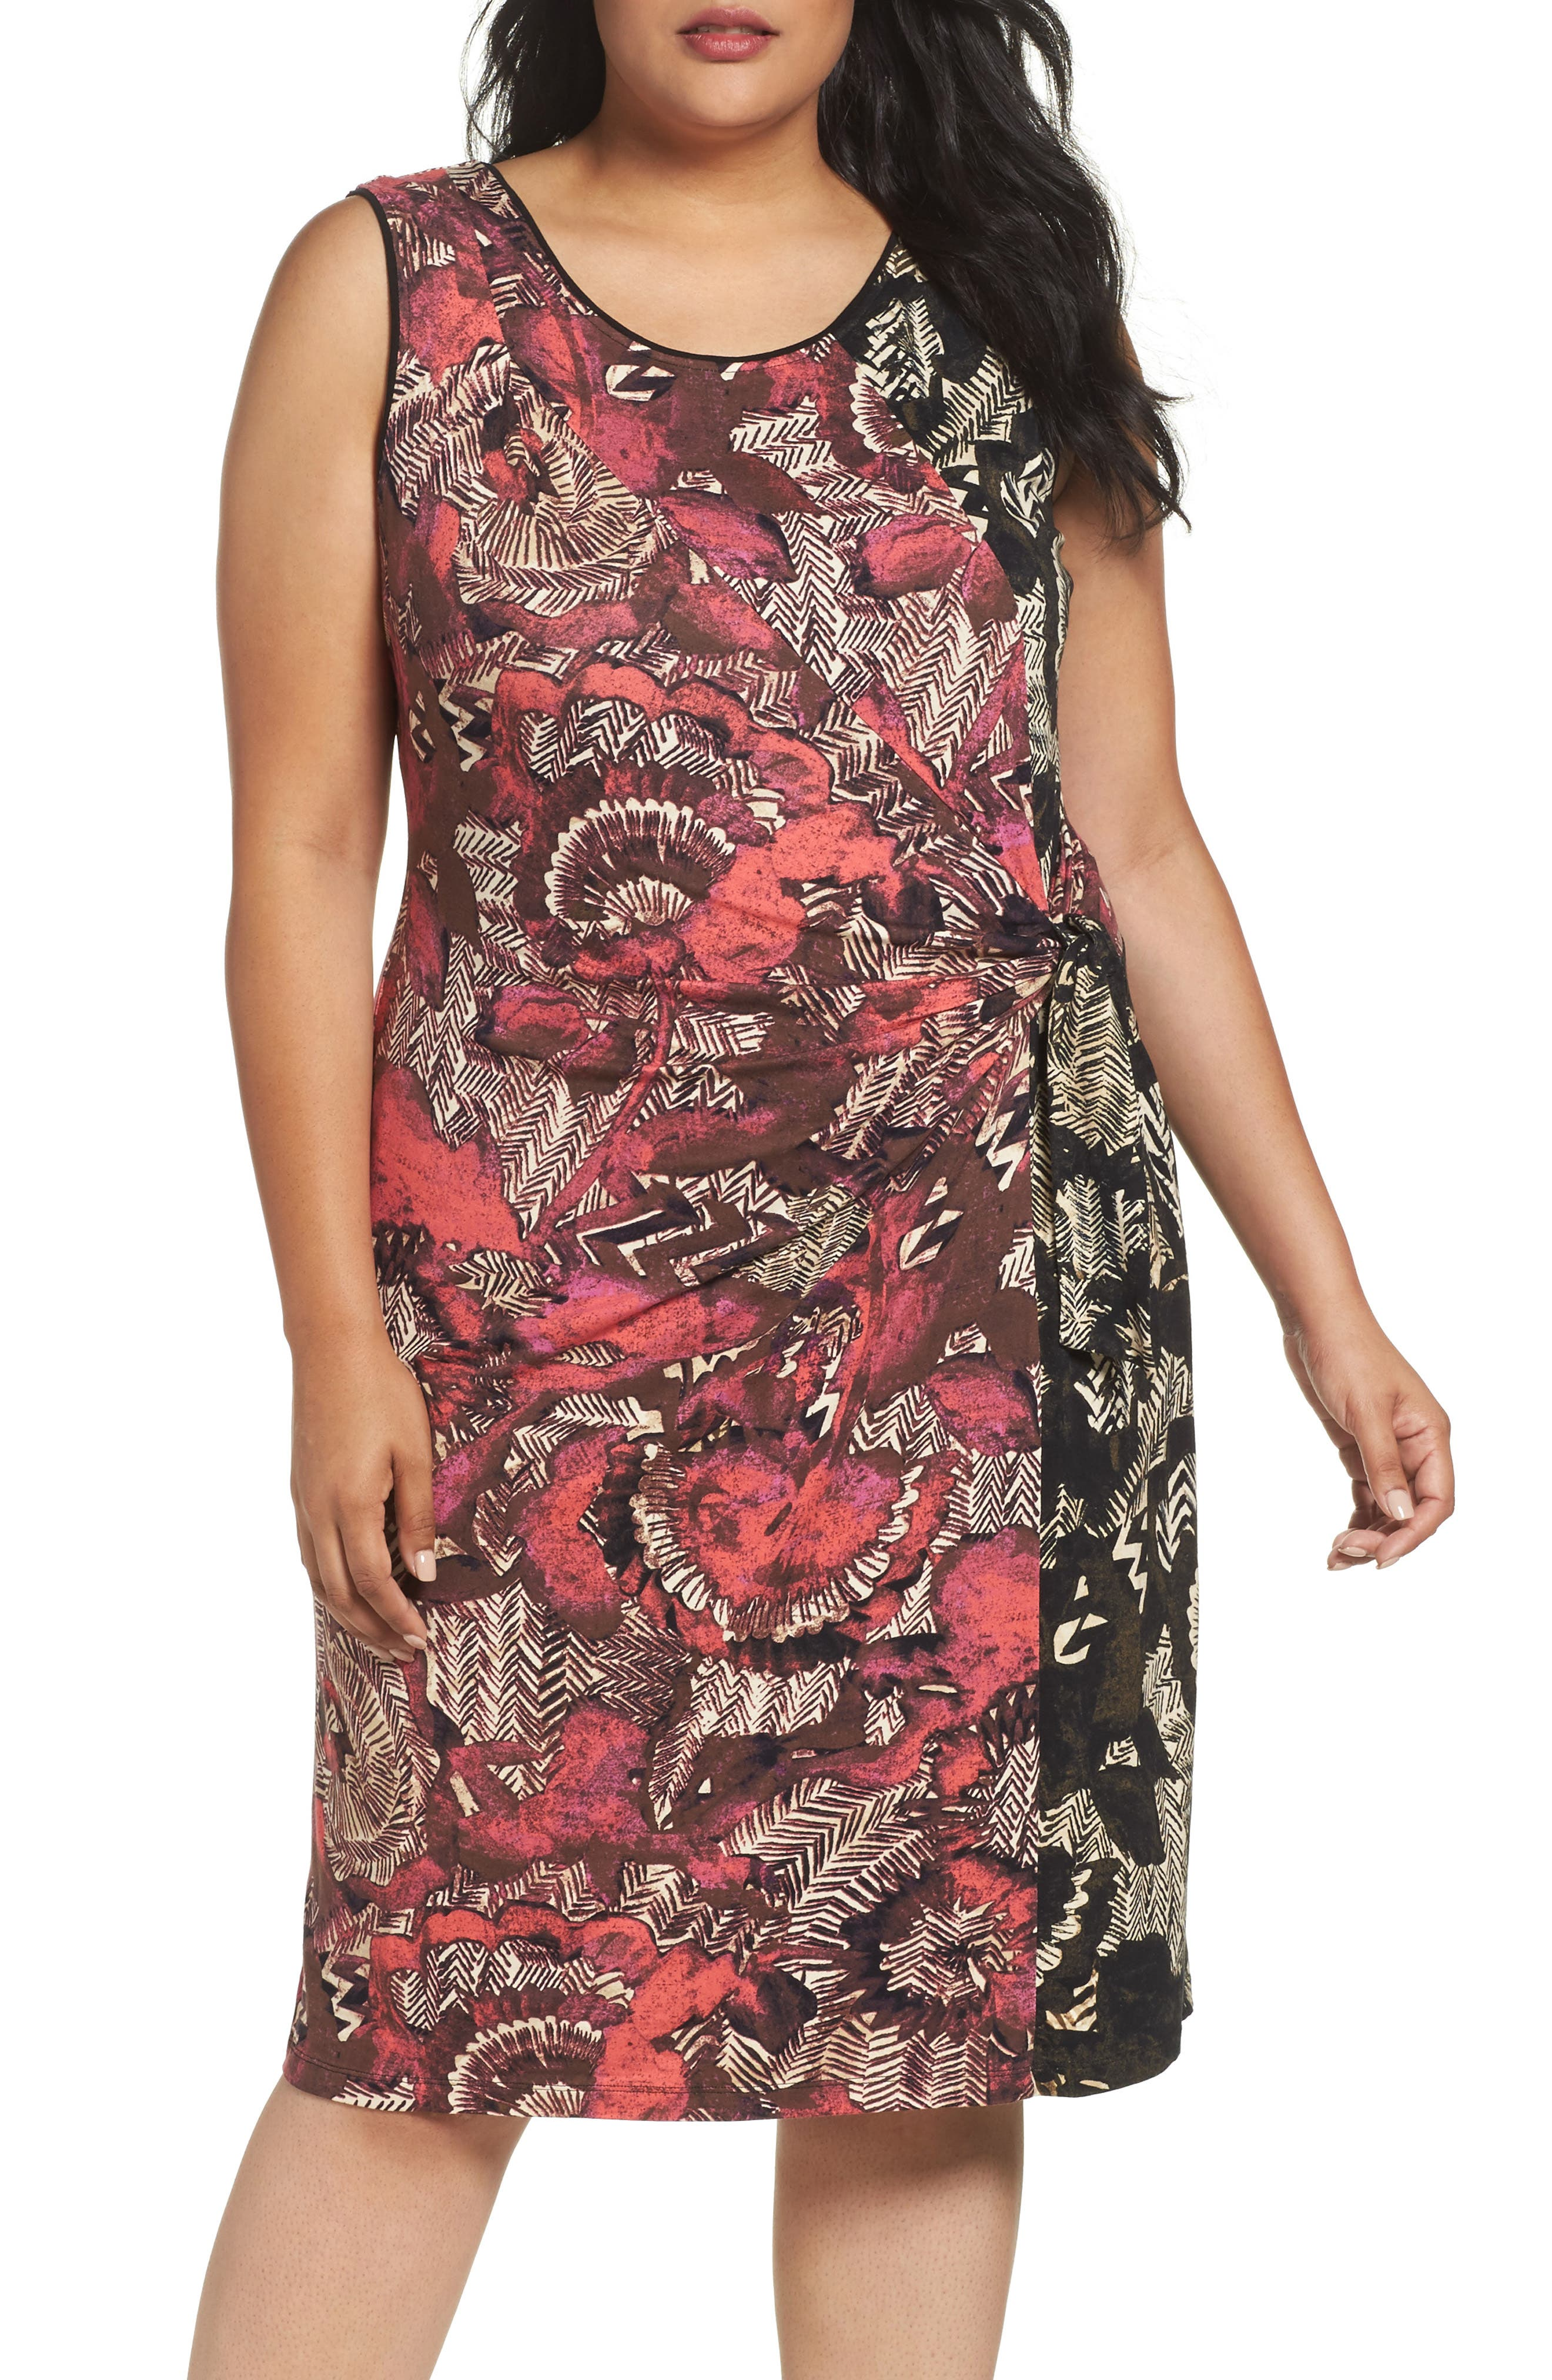 Alternate Image 1 Selected - NIC+ZOE Etched Floral Dress (Plus Size)